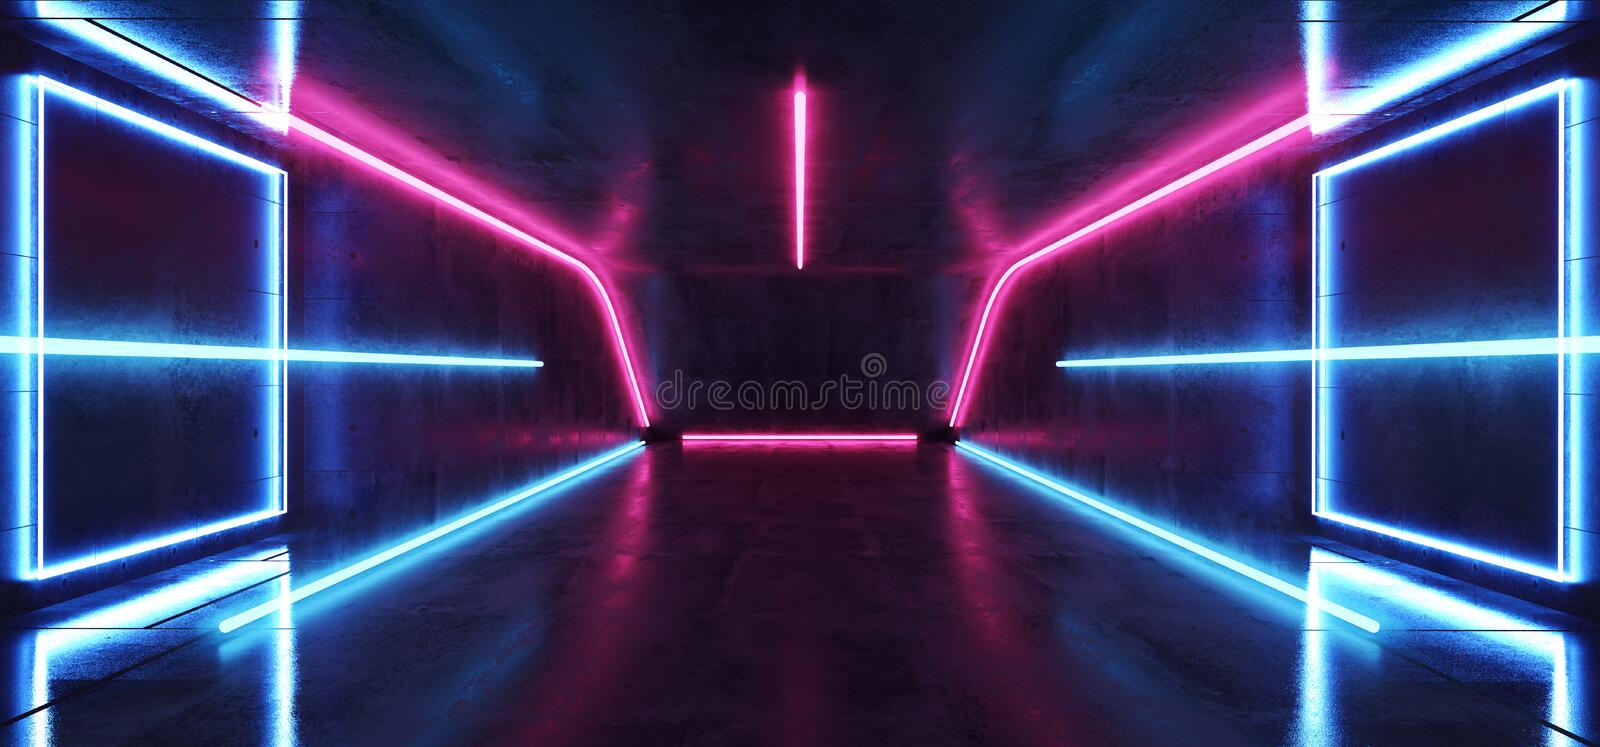 Fluorescent Vibrant Neon Futuristic Sci Fi Glowing Purple Blue Virtual Reality Cyber Tunnel Concrete Grunge Floor Room Hall Studio vector illustration